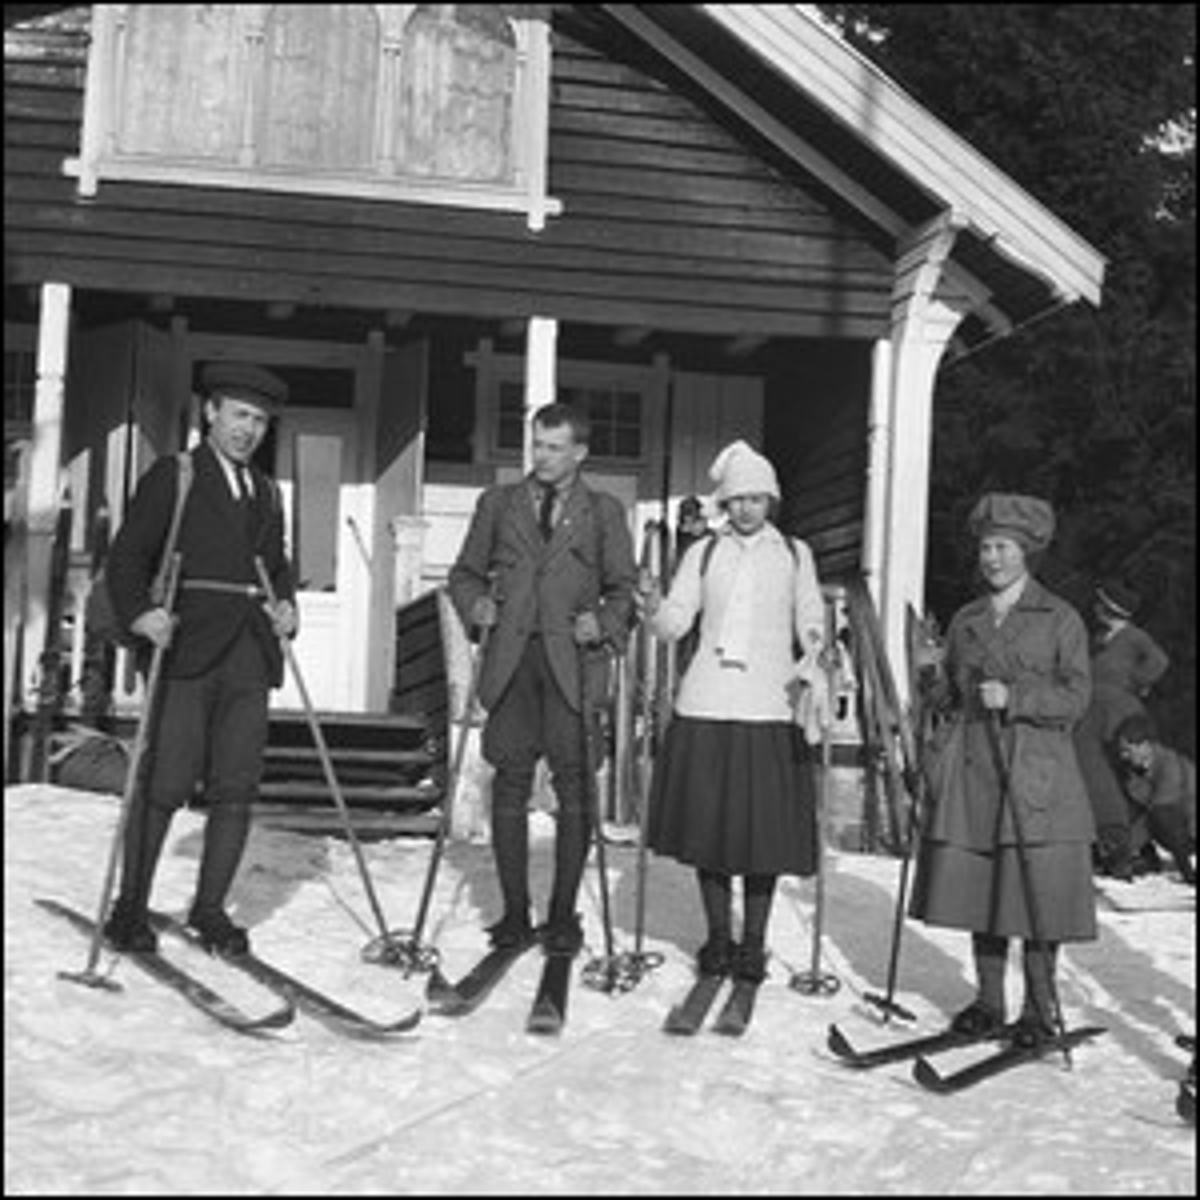 A group of friends preparing to go skiing in 1920s Norway.